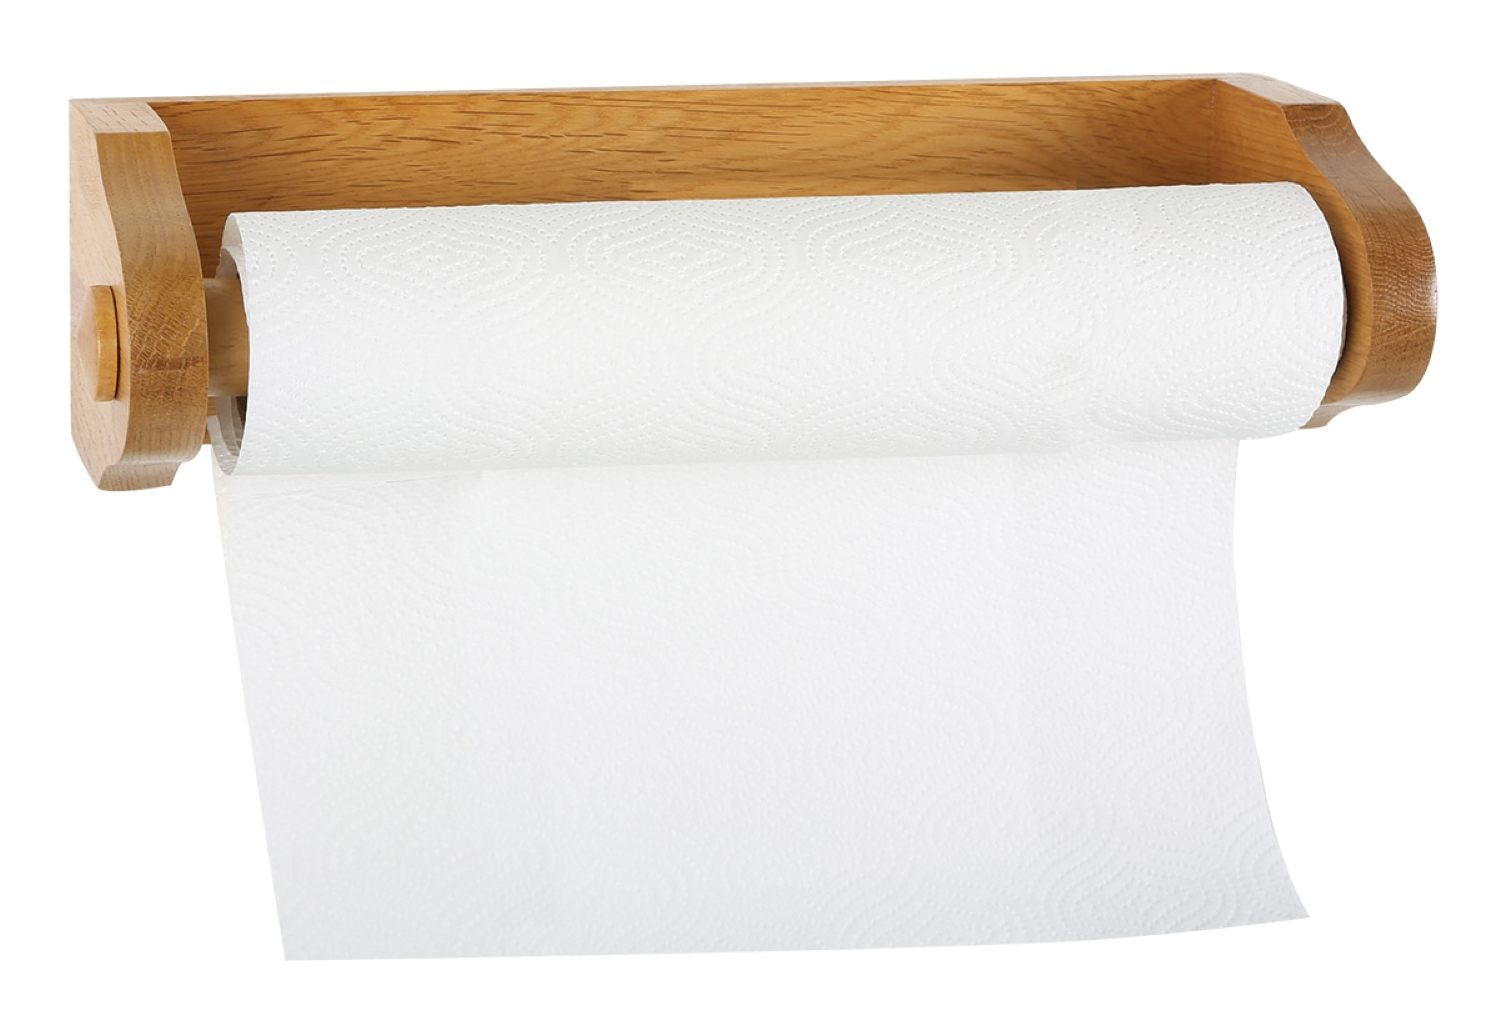 Design House 561233 Dalton Rustic Paper Towel Holder For Kitchen Laundry Room Honey Oak Walmart Com Walmart Com